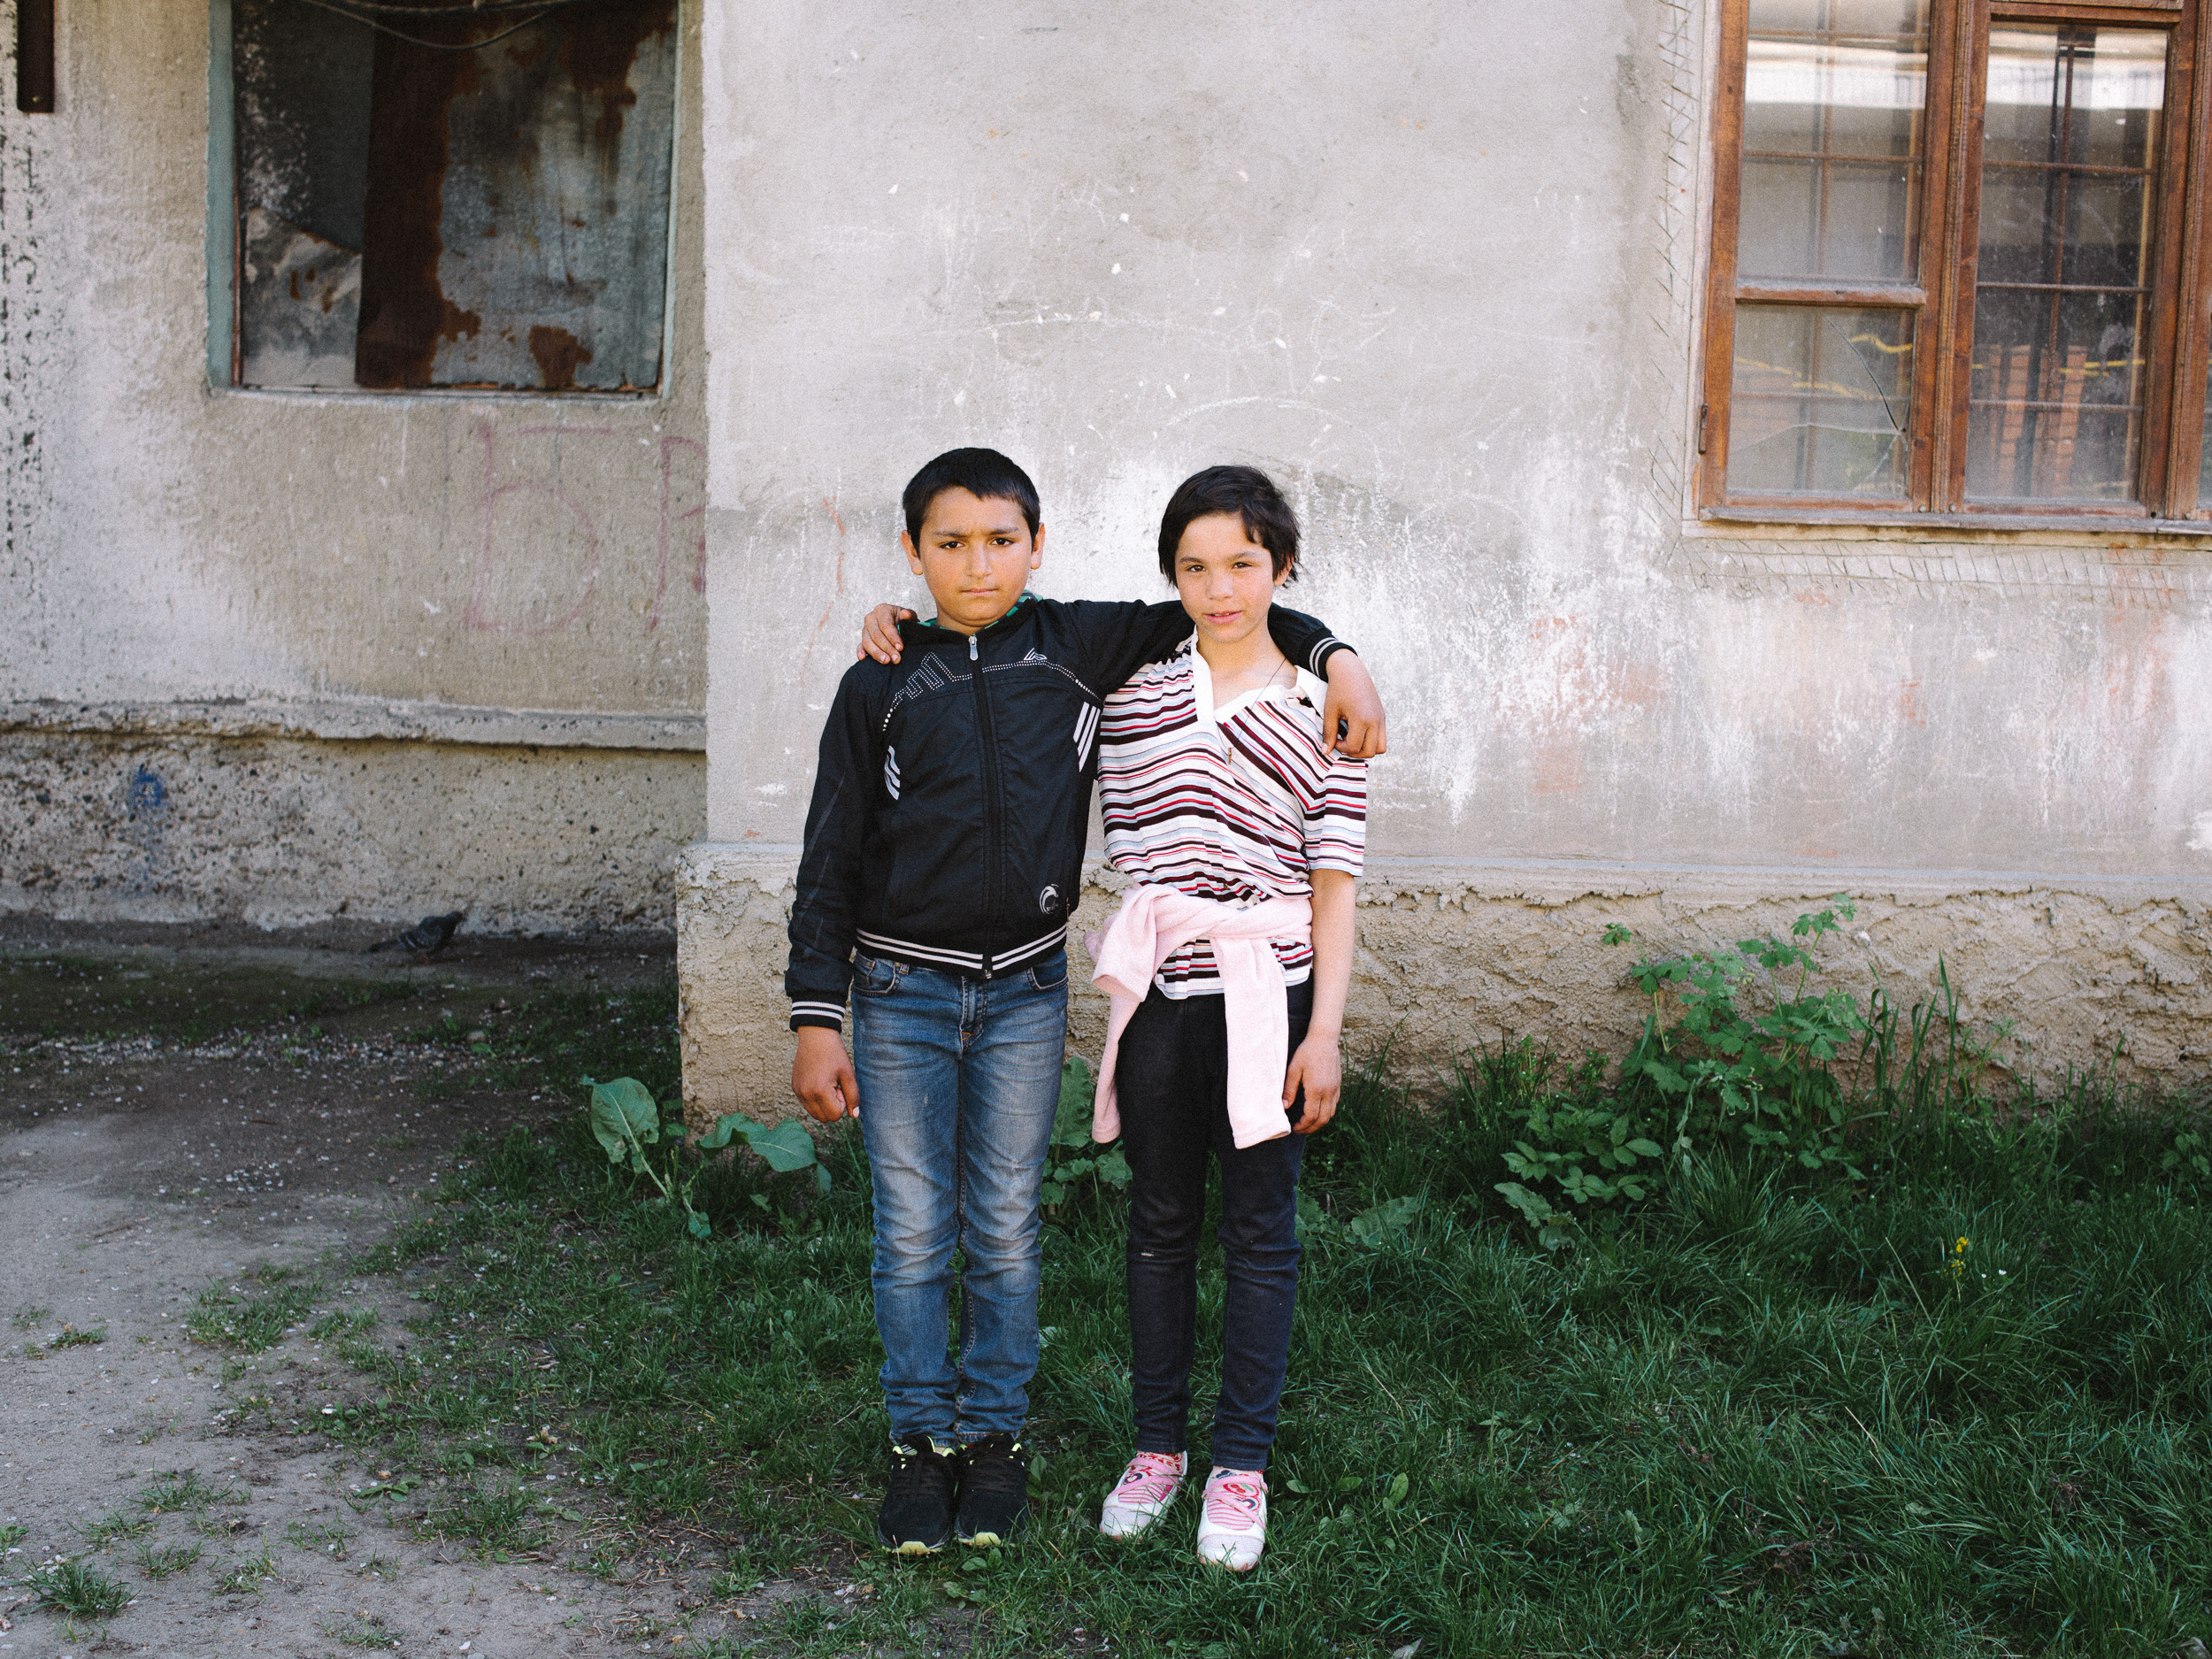 Matvej, 11, with his cousin, in front of their home, 'the Titanic'